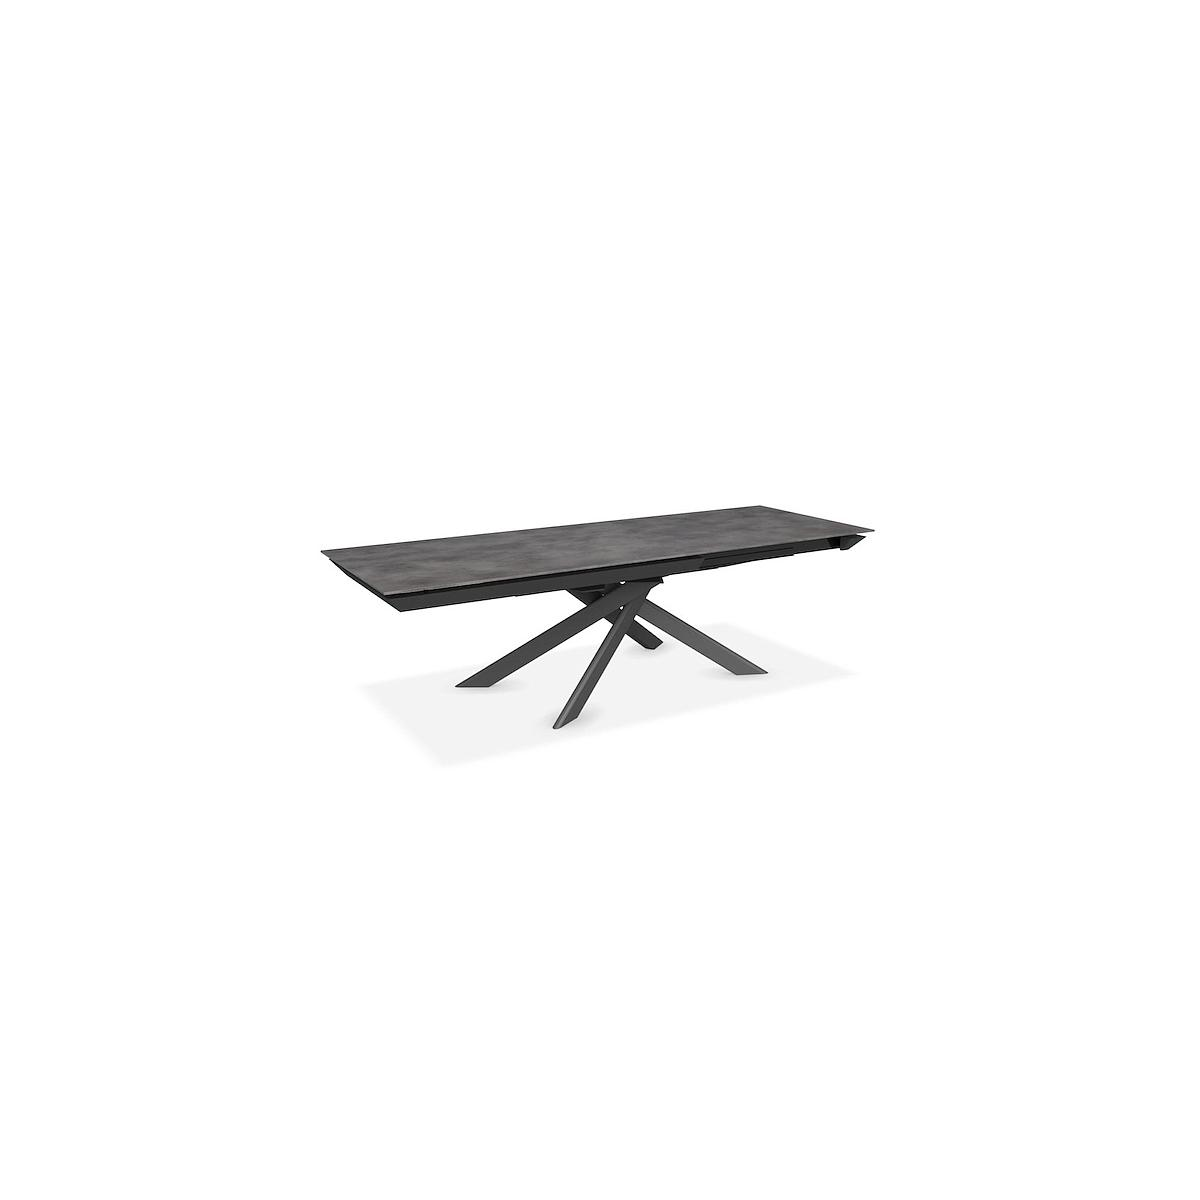 Table rectangulaire extensible ECLISSE Calligaris céramique-verre ciment